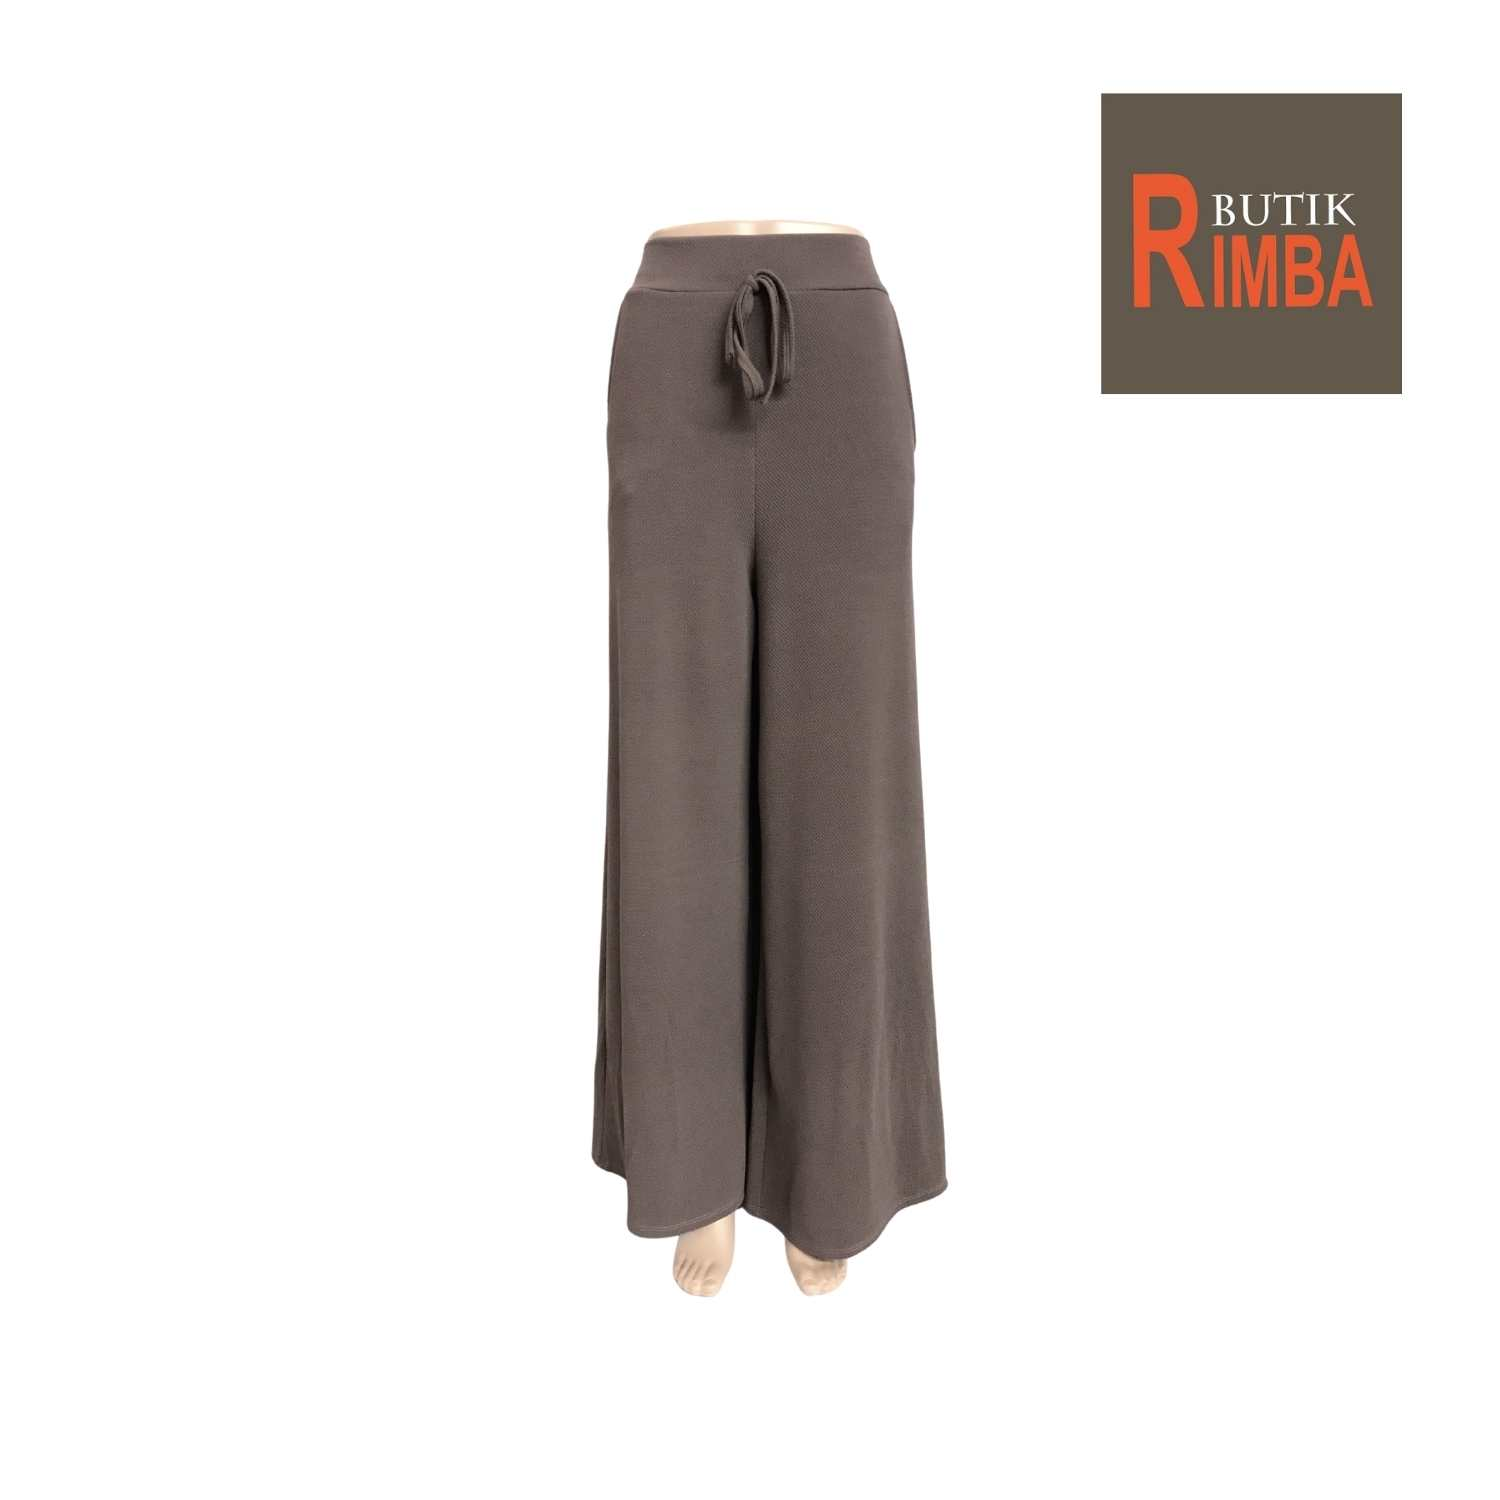 PLAIN PALAZO PANT LONG WITH FASHION SMALL TIE AND POCKET STRETCHABLE FREE SIZE (FITS S-XXL)